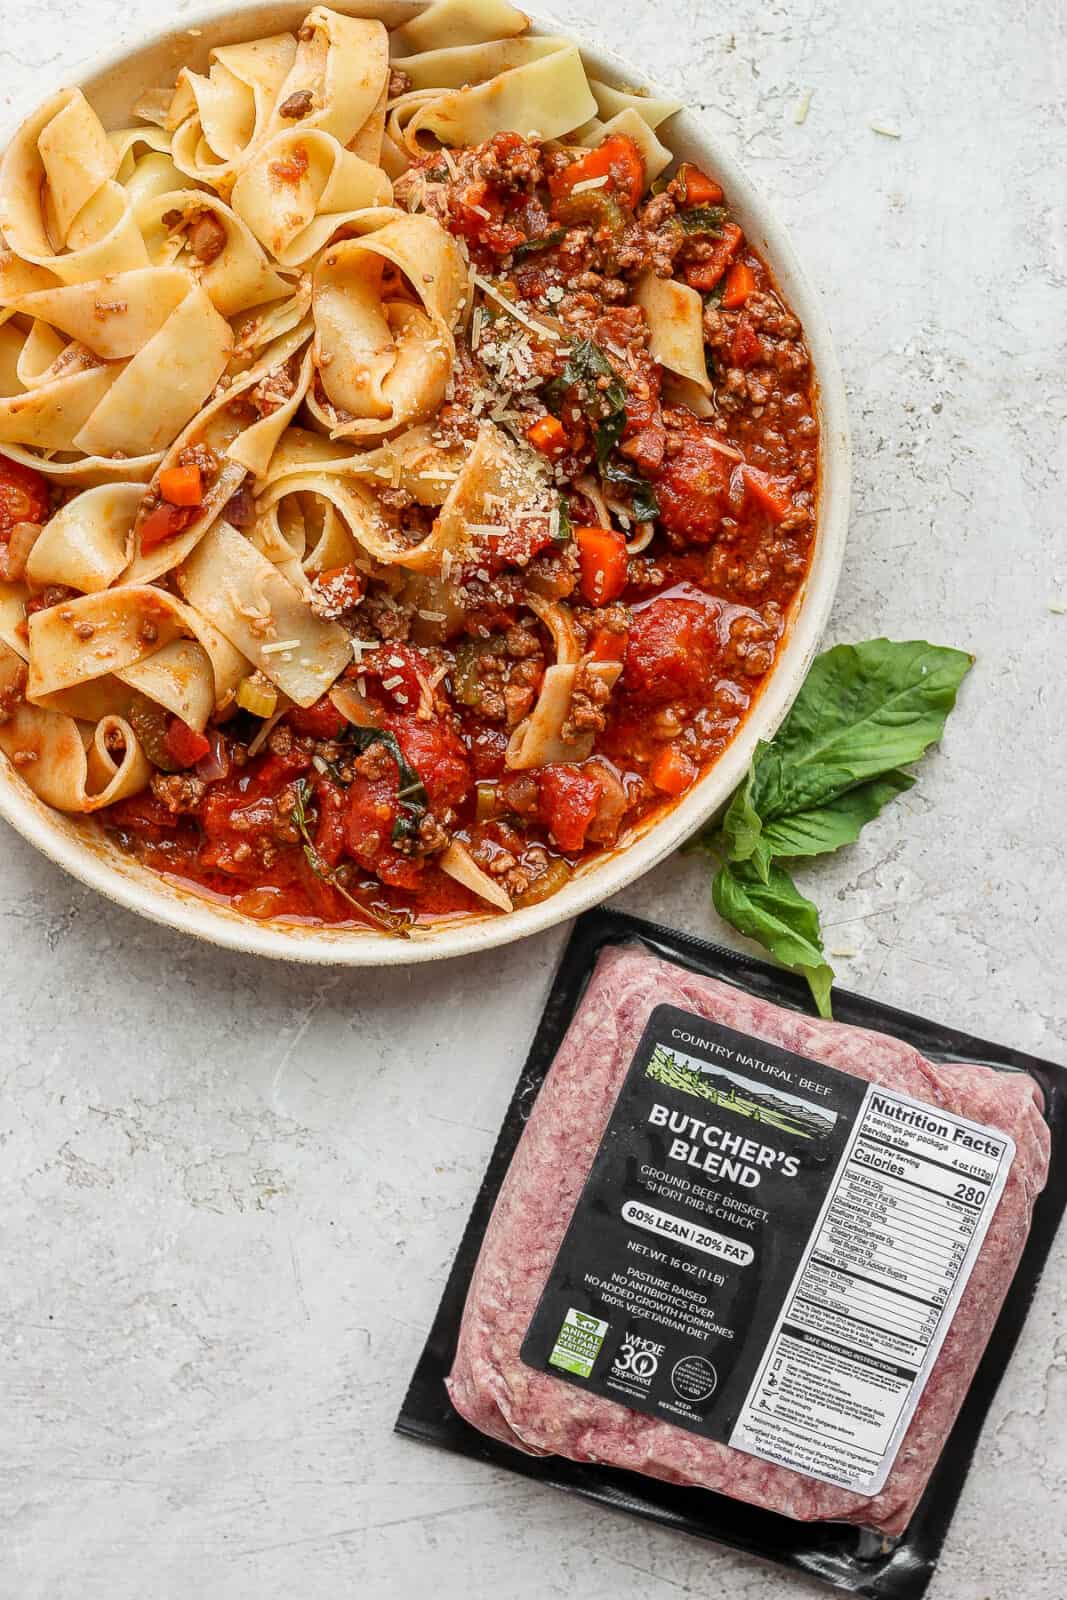 Bowl of pappardelle bolognese with a package of butcher's blend ground beef.